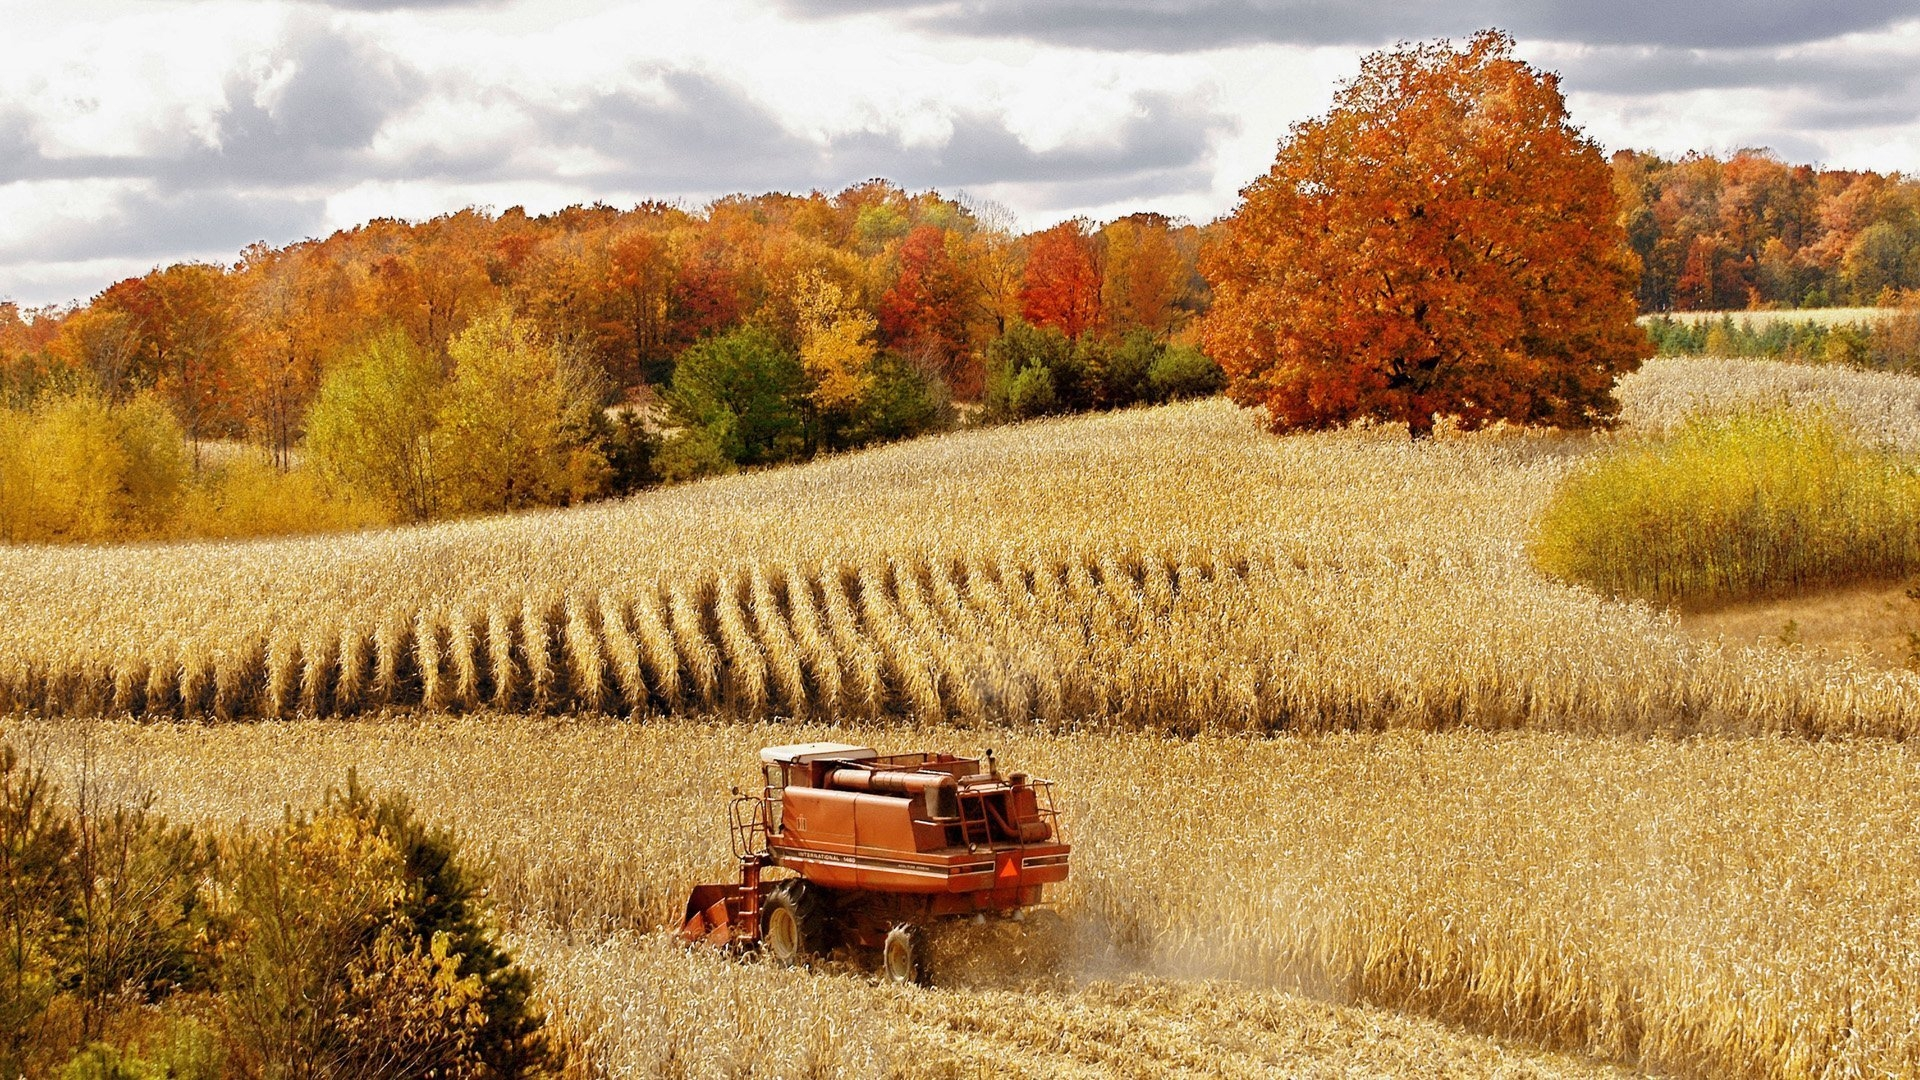 field_combine_crop_agriculture_cleaning_46746_1920x1080